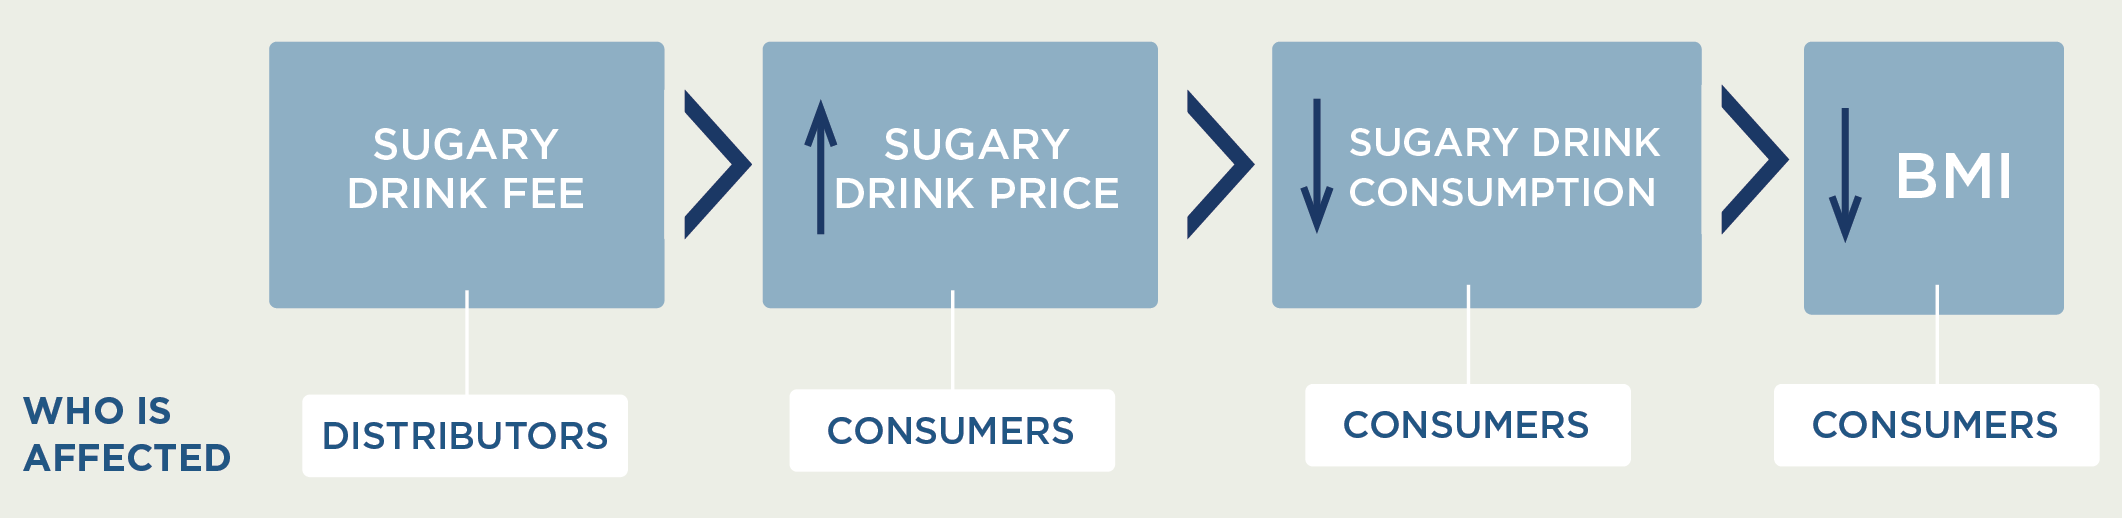 Logic model: Sugary drink fee - Distributors are affected. Leads to an increase in sugary drink price, and consumers are affected. This leads to a decrease in sugary drink consumption, and consumers are affected. This finally leads to a decrease in BMI, and consumers are affected.